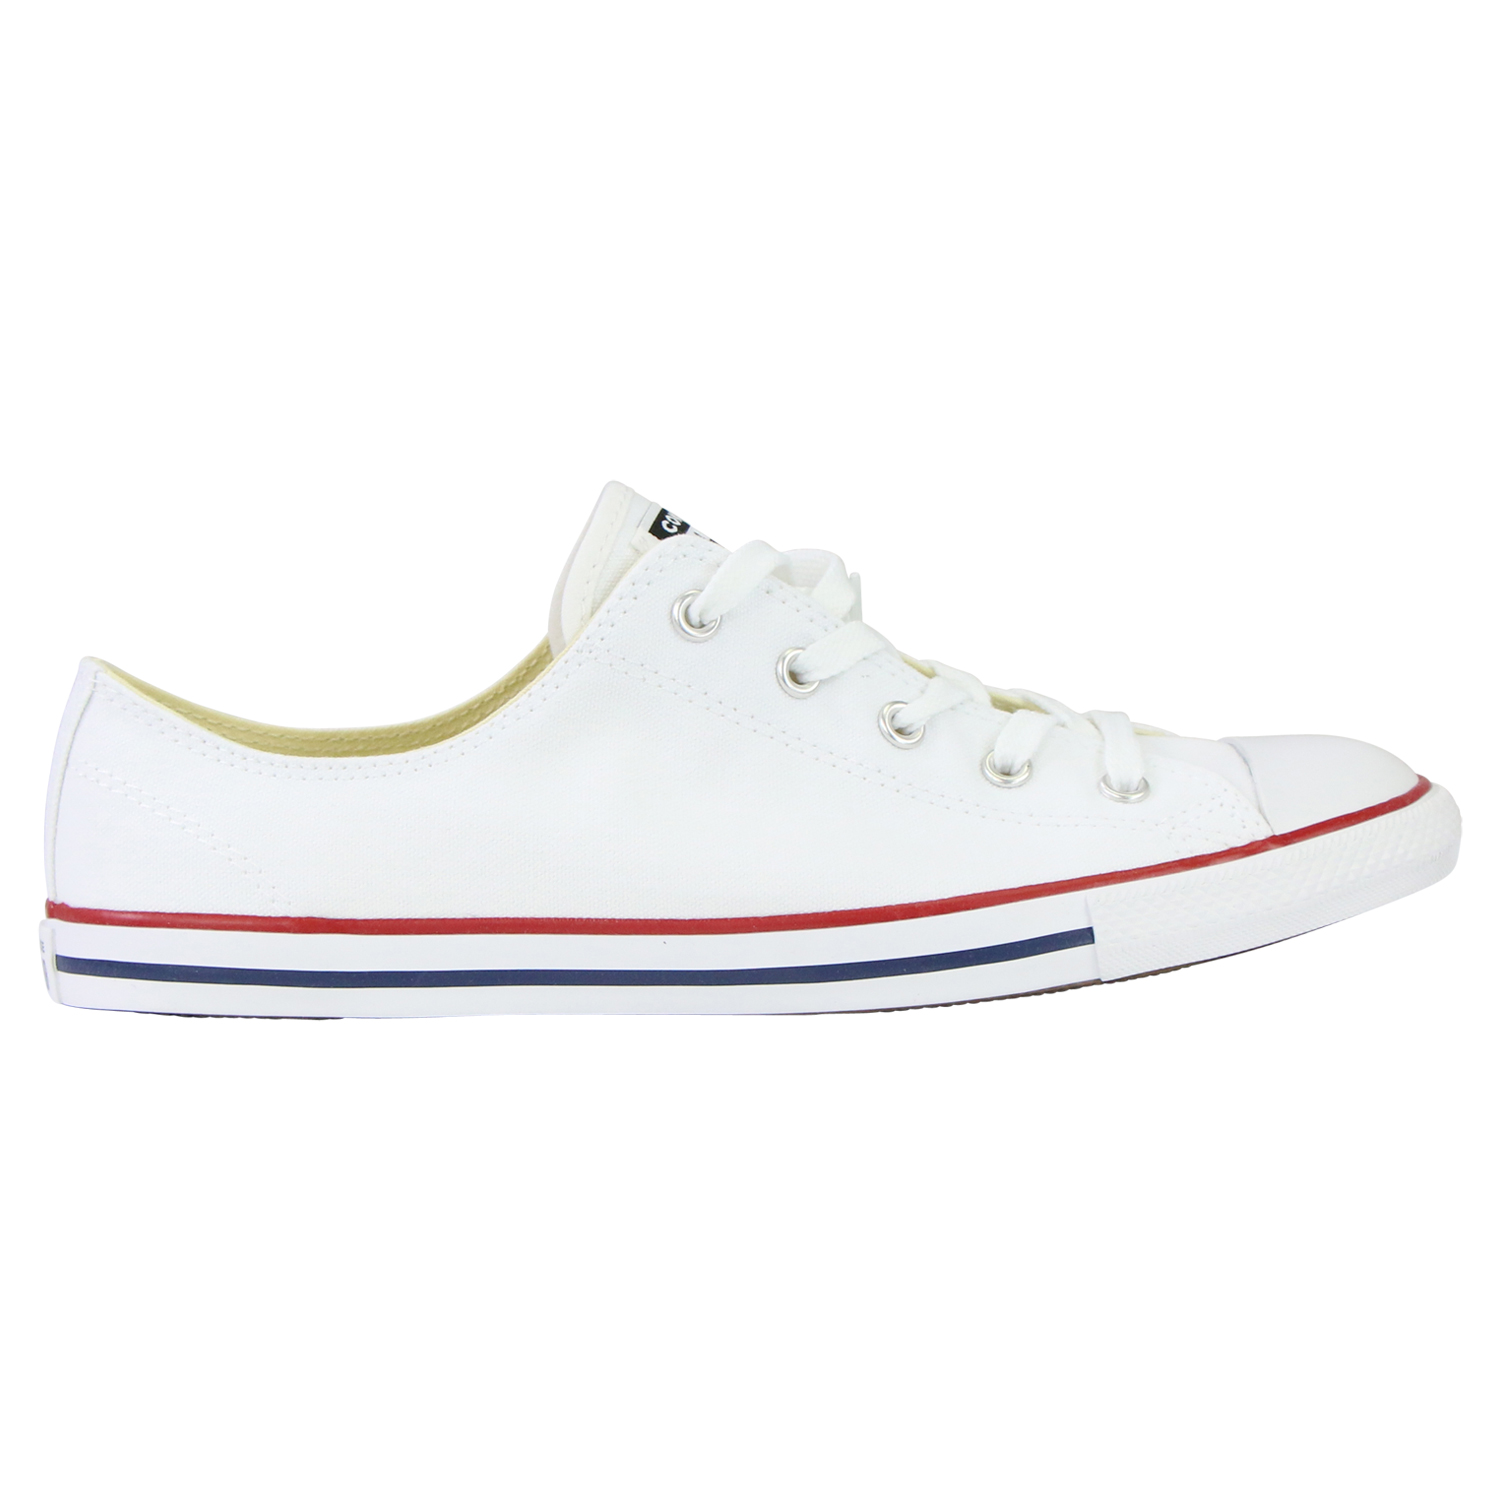 Details zu Converse Chucks All Star Dainty Ox 537204C White Canvas Schuhe Sneaker Weiß